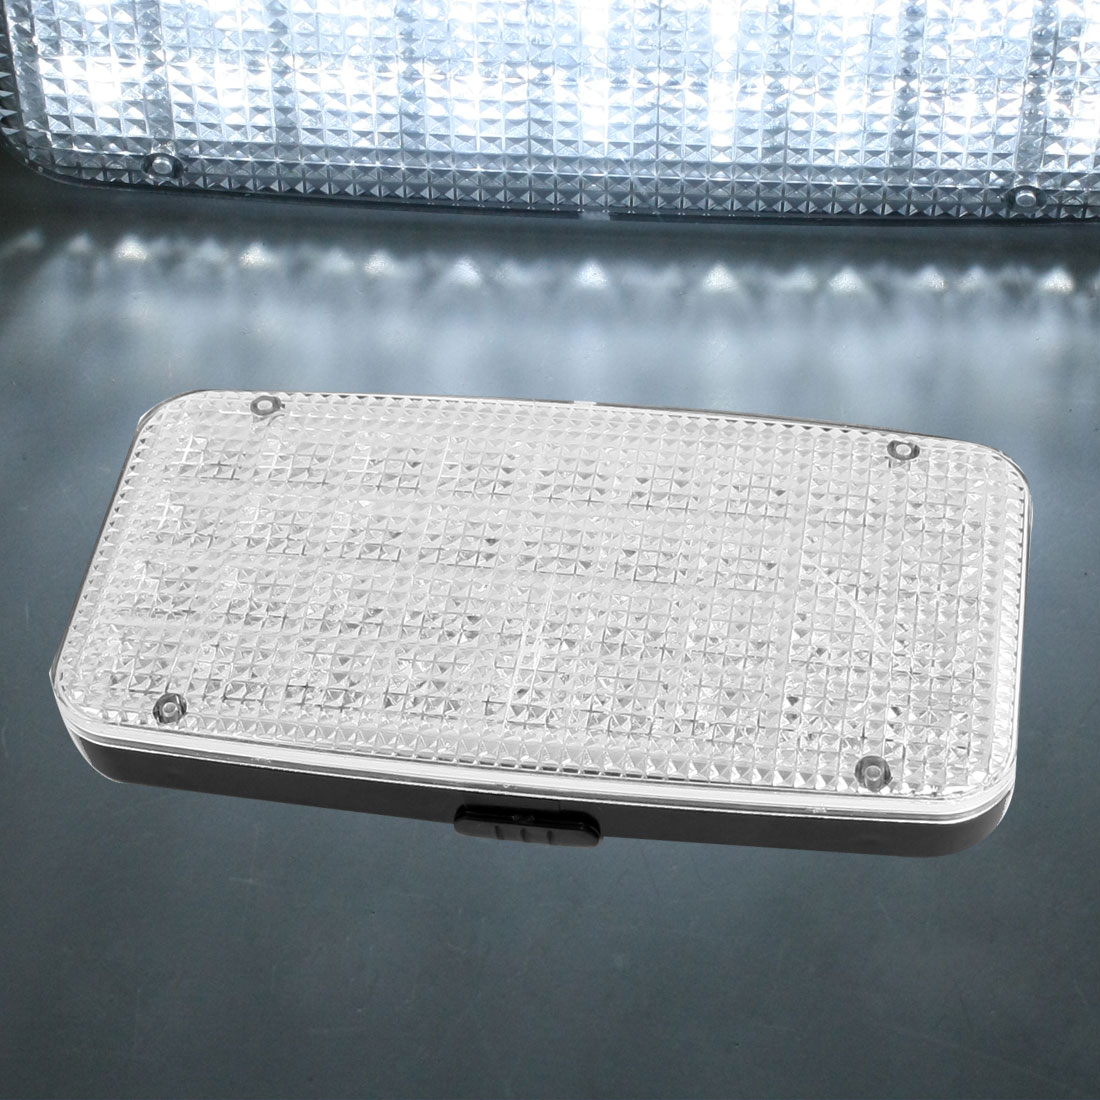 36 LED Car Vehicle Dome Roof Ceiling Interior Light Lamp White